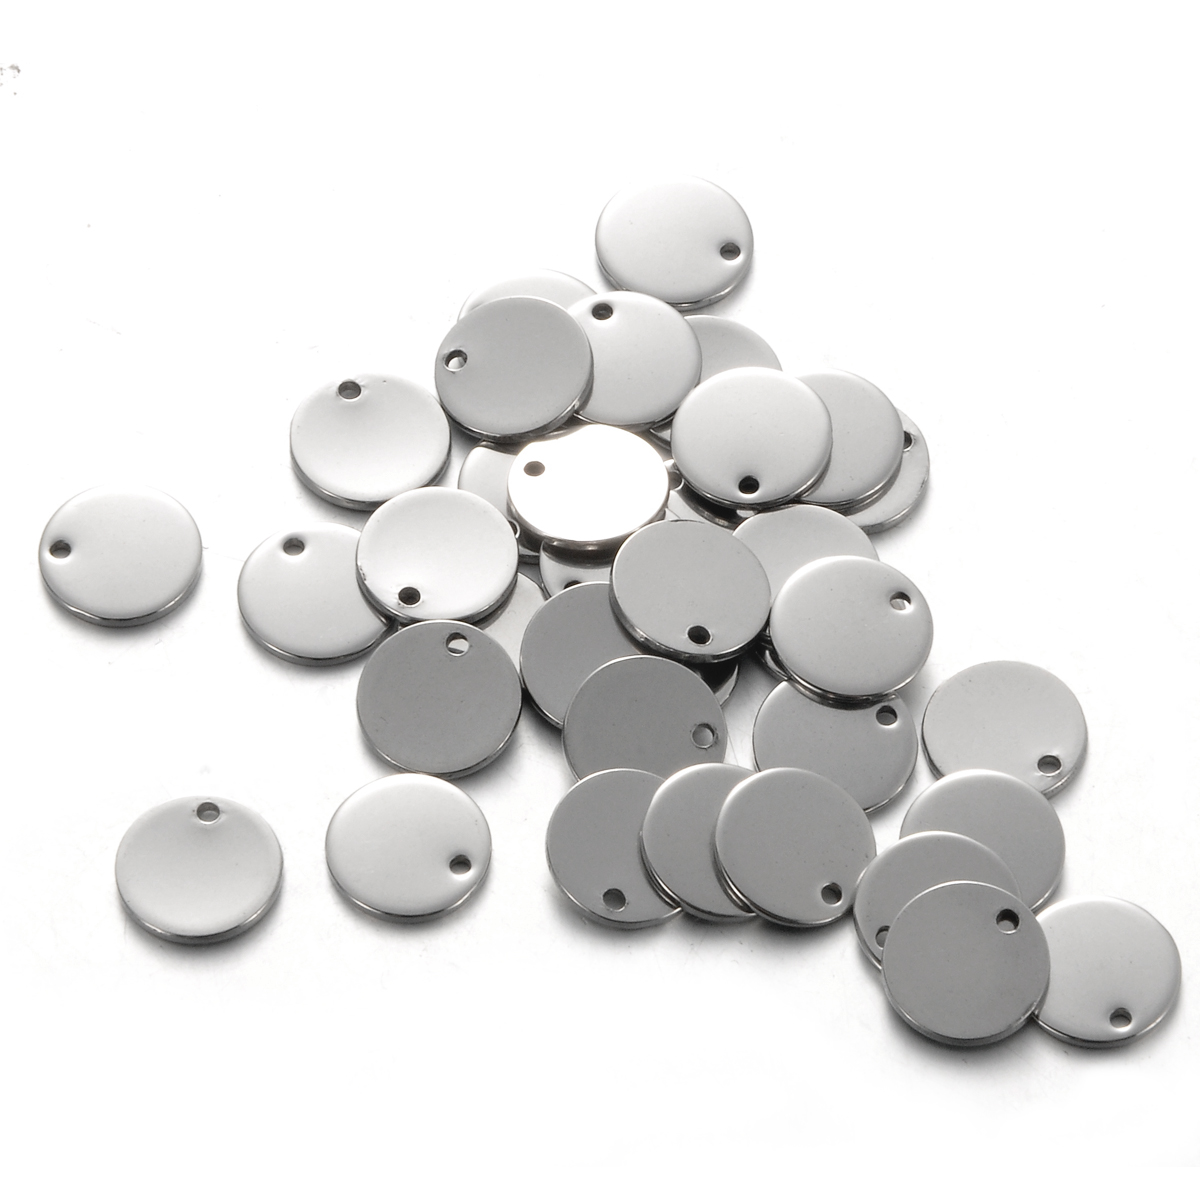 Round Stainless Steel Tag Findings Pet Identification Metal Blank 20mm